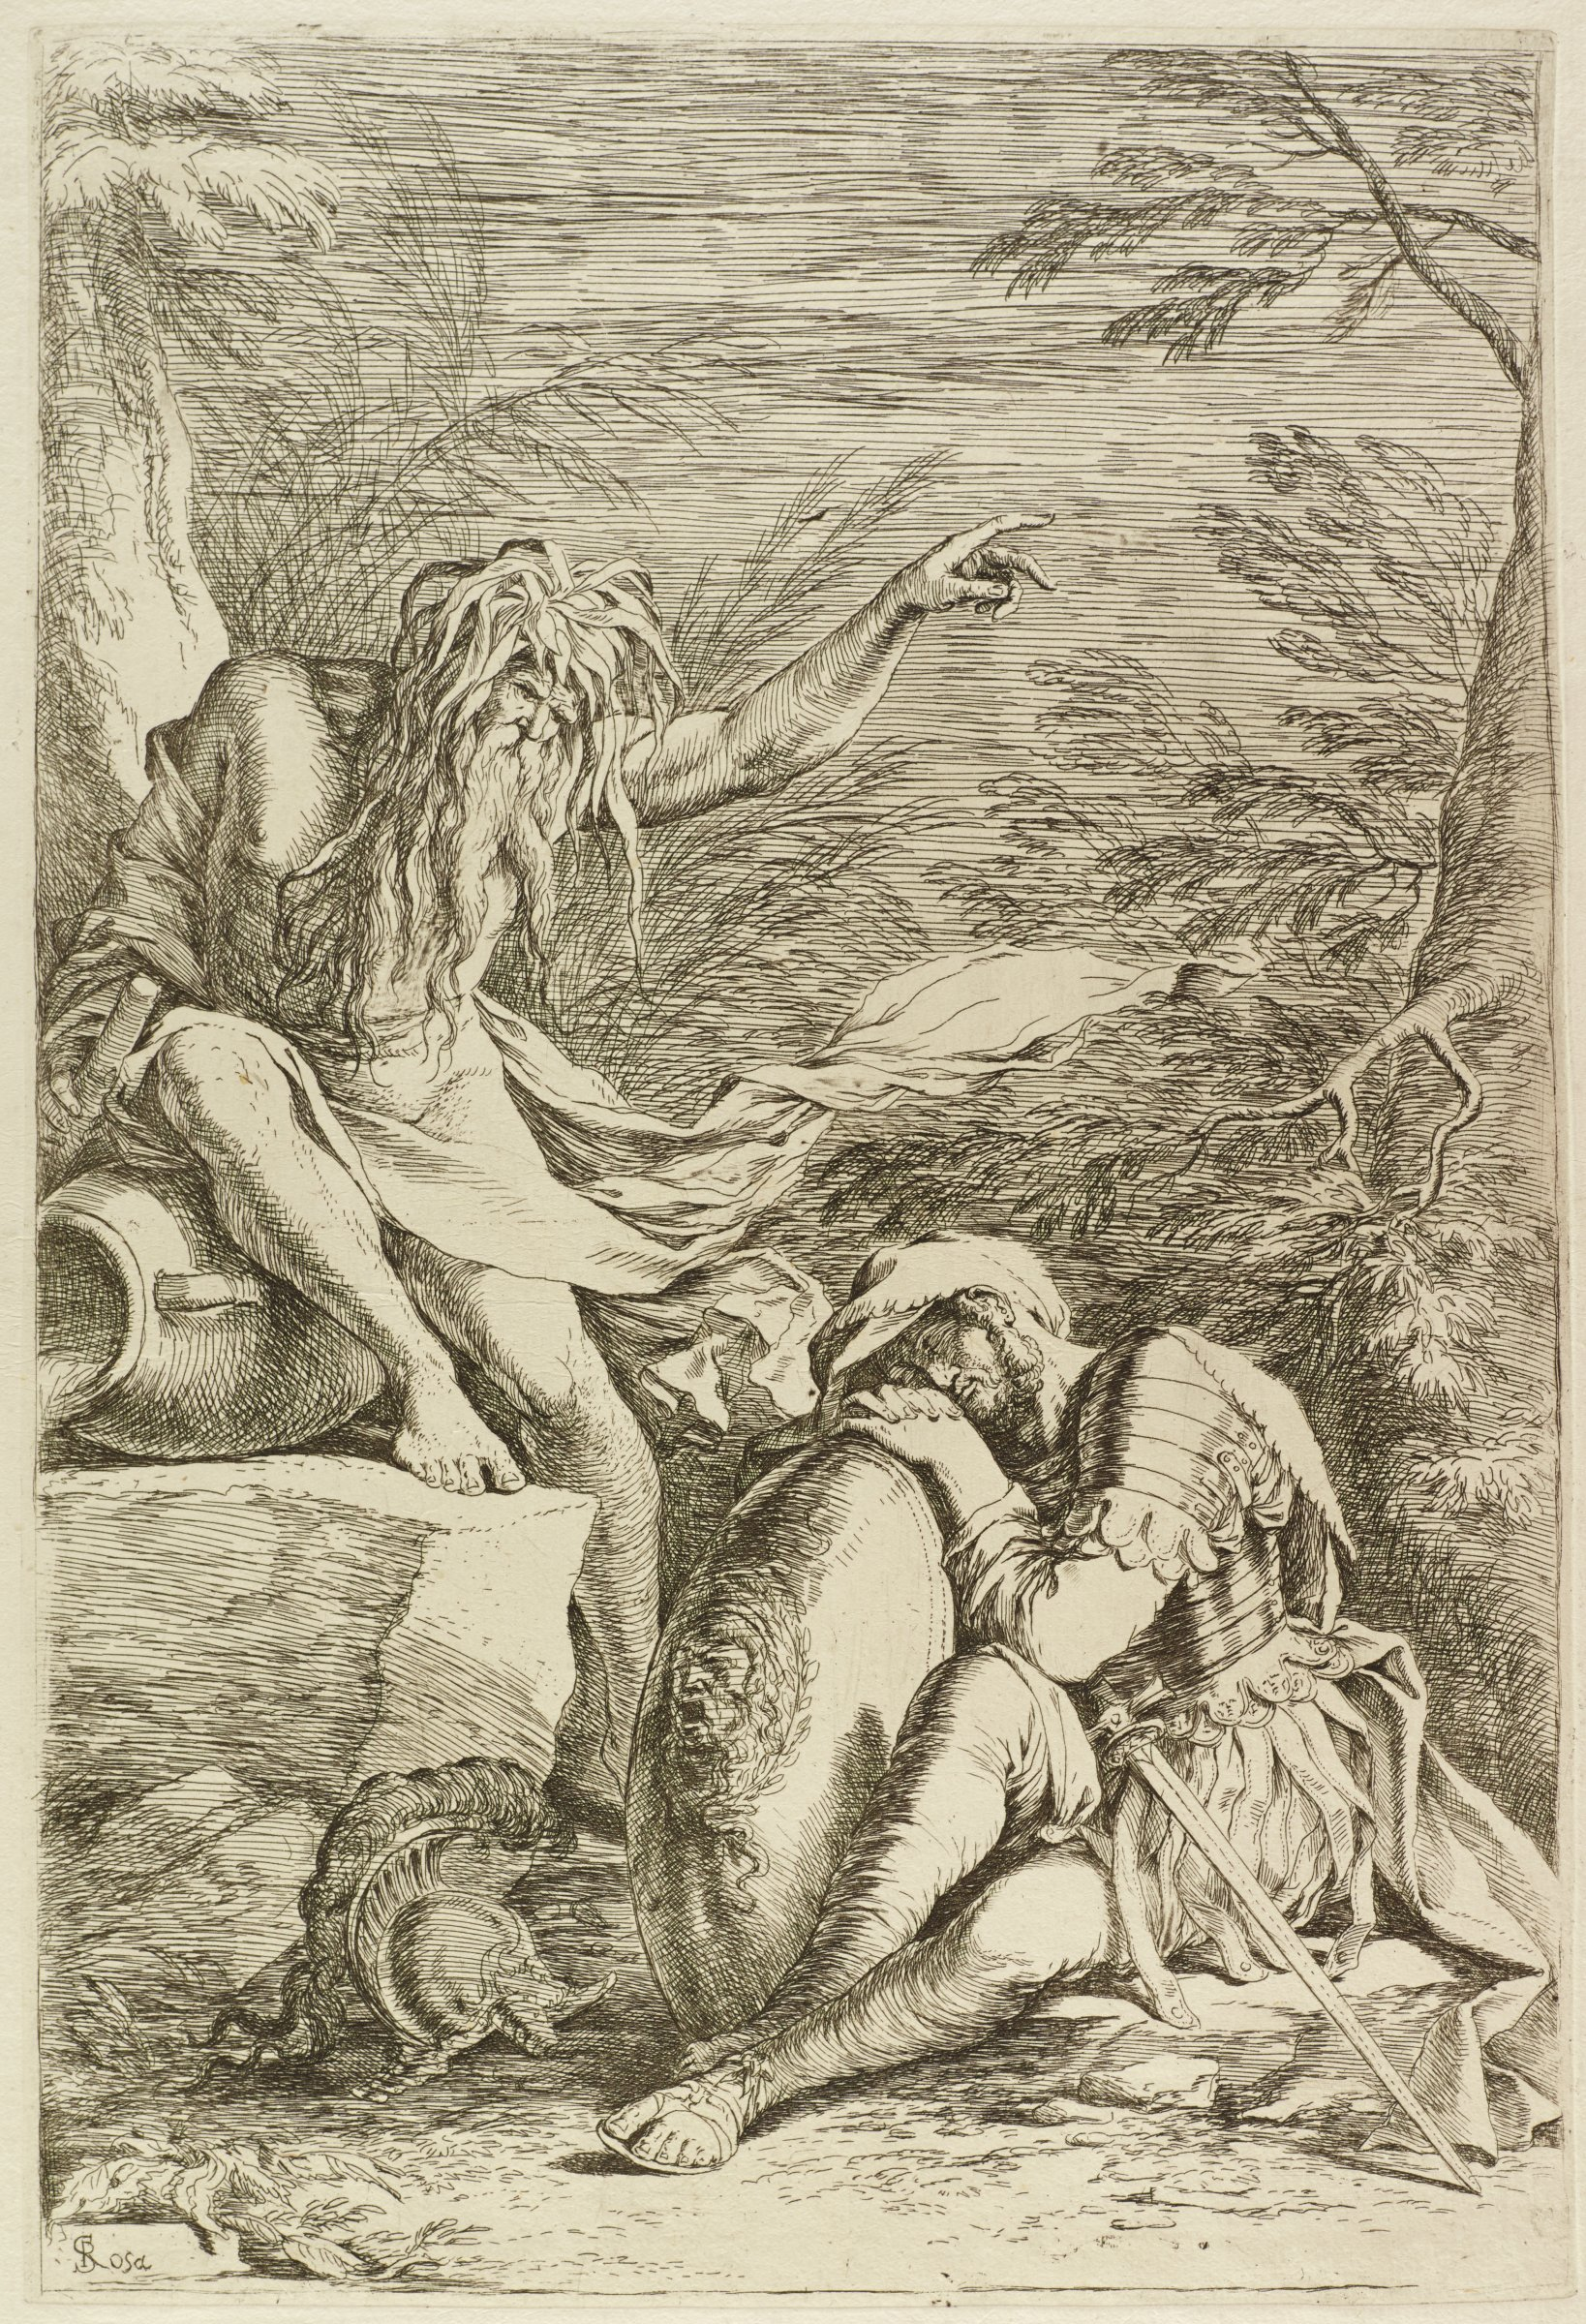 Aeneas rests his head on his shield as he dreams of the god Tiber. Tiber leans against an overturned vessel and points up and outward with his right hand. They are set within a dense forest.